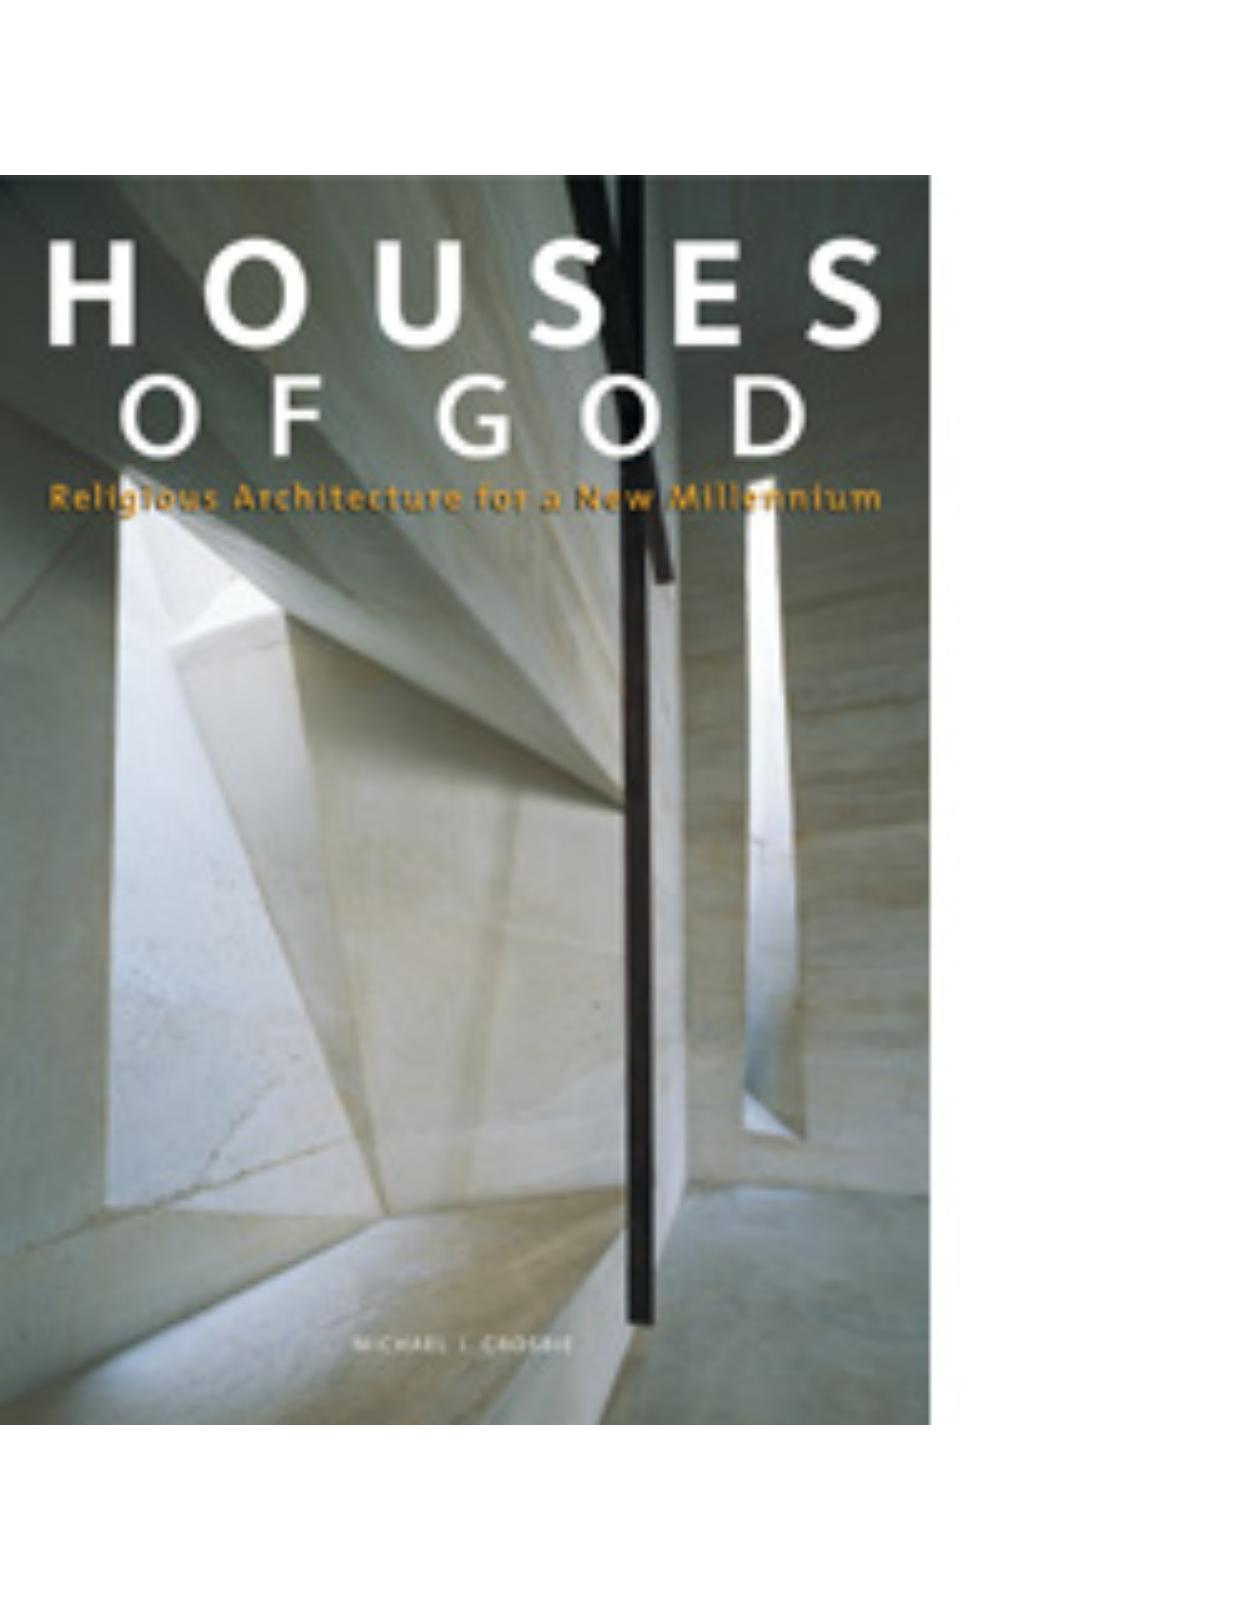 Houses of God: Religious Architecture for a New Millennium